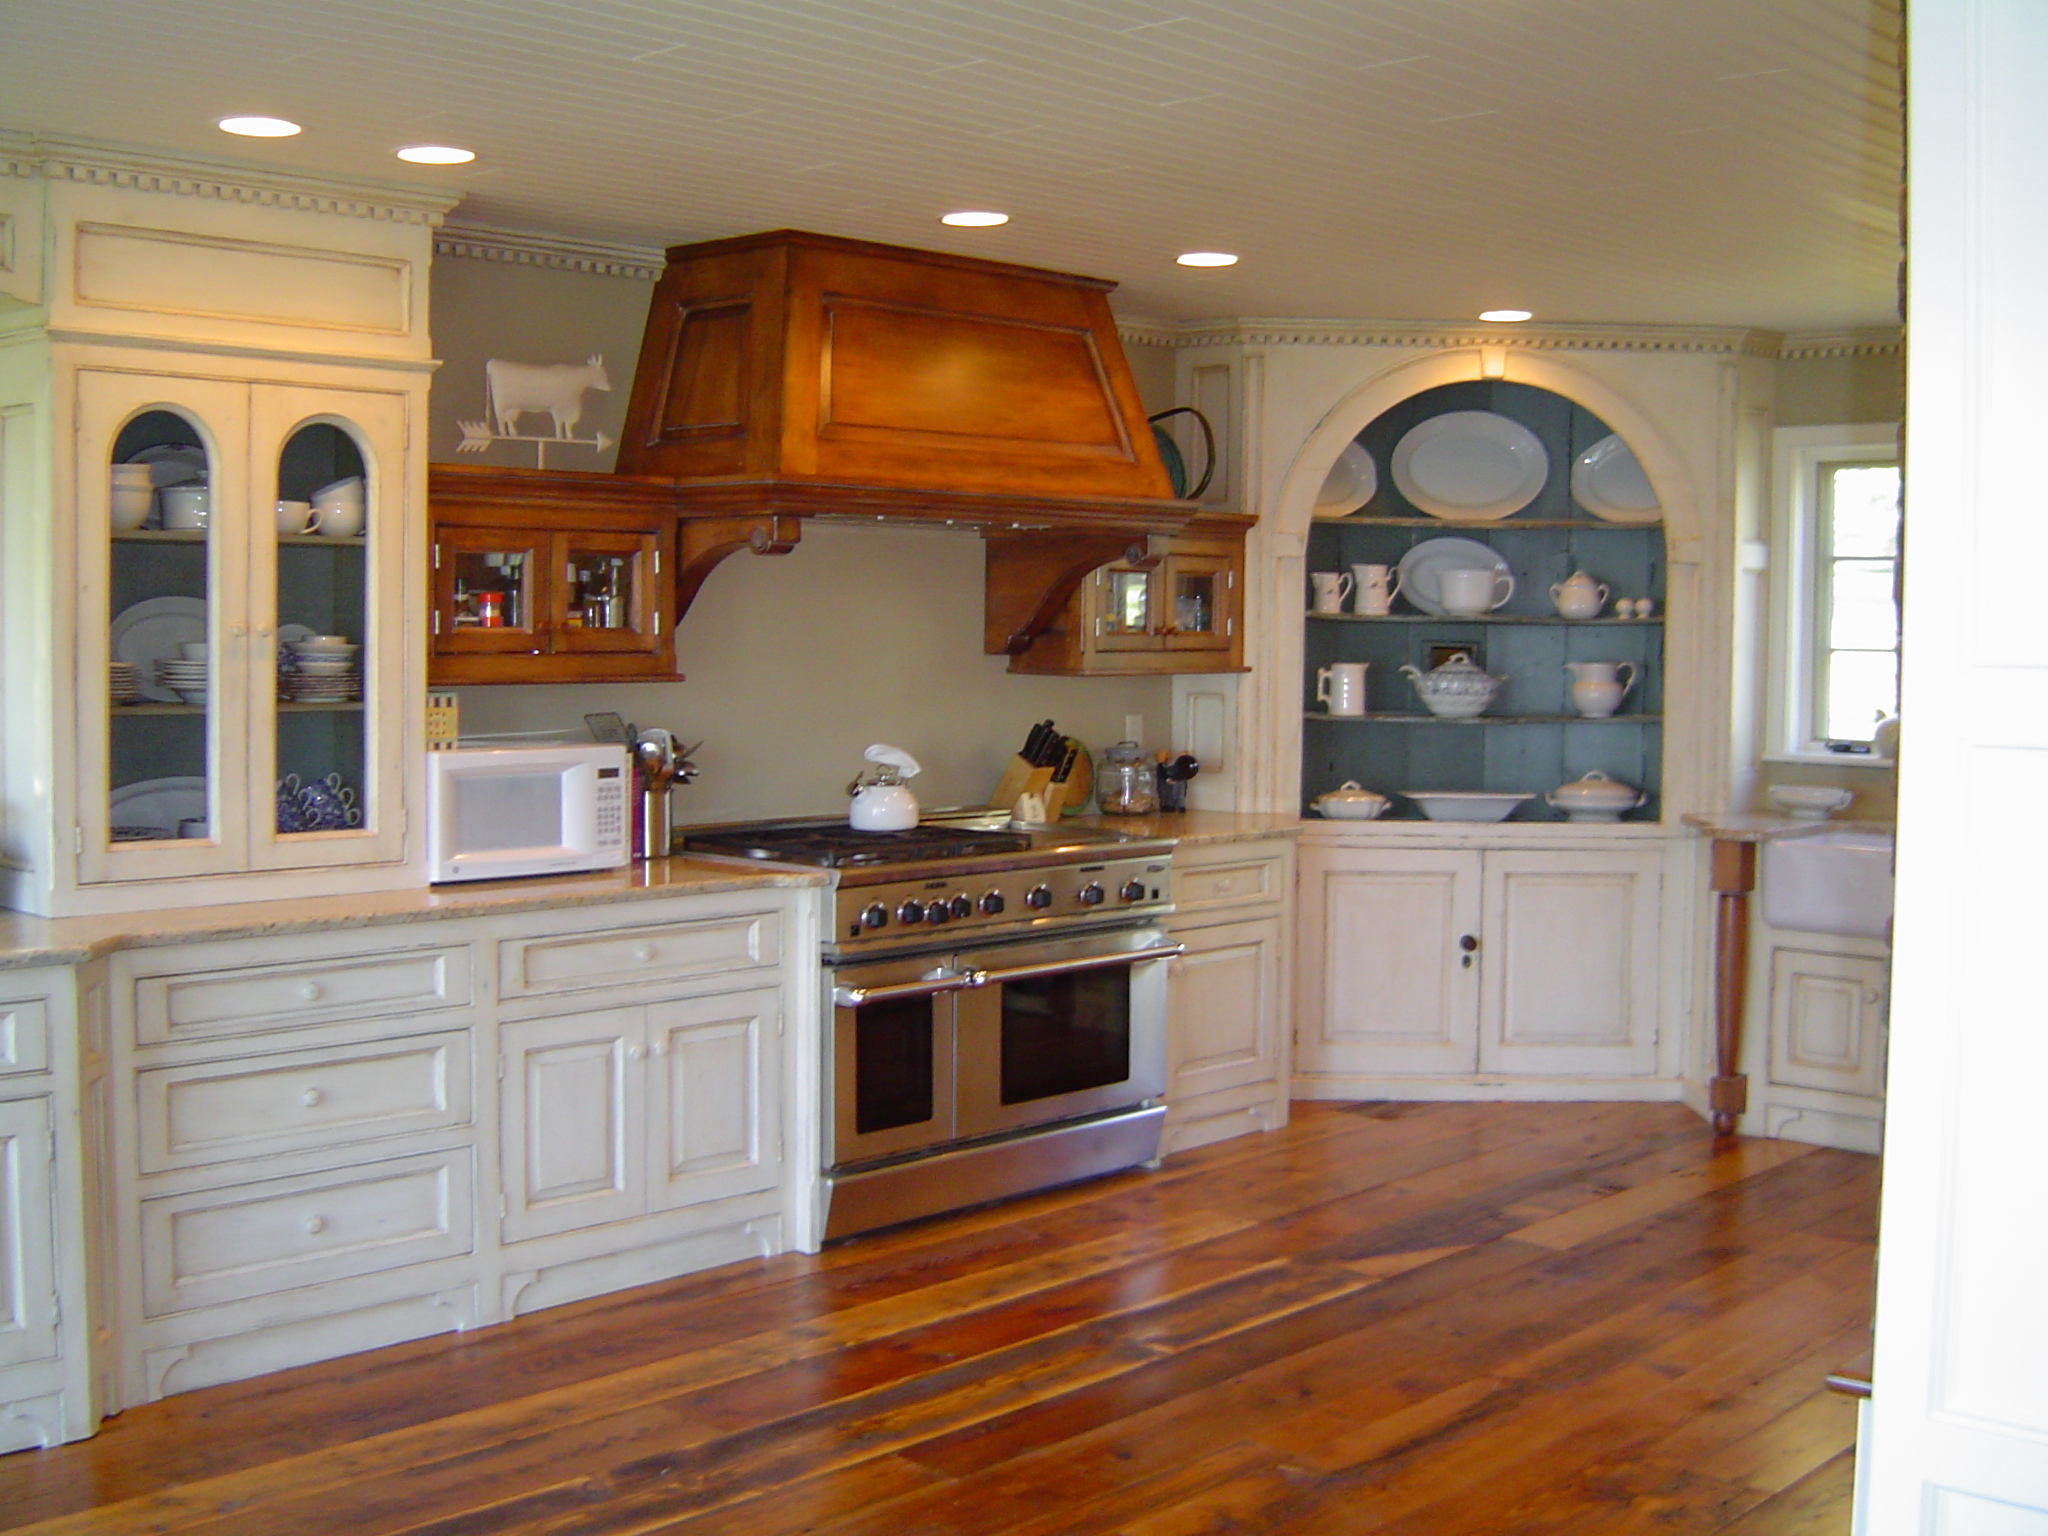 Salvaged kitchen cabinets color for kitchen cabinets for Atlanta ga kitchen cabinets